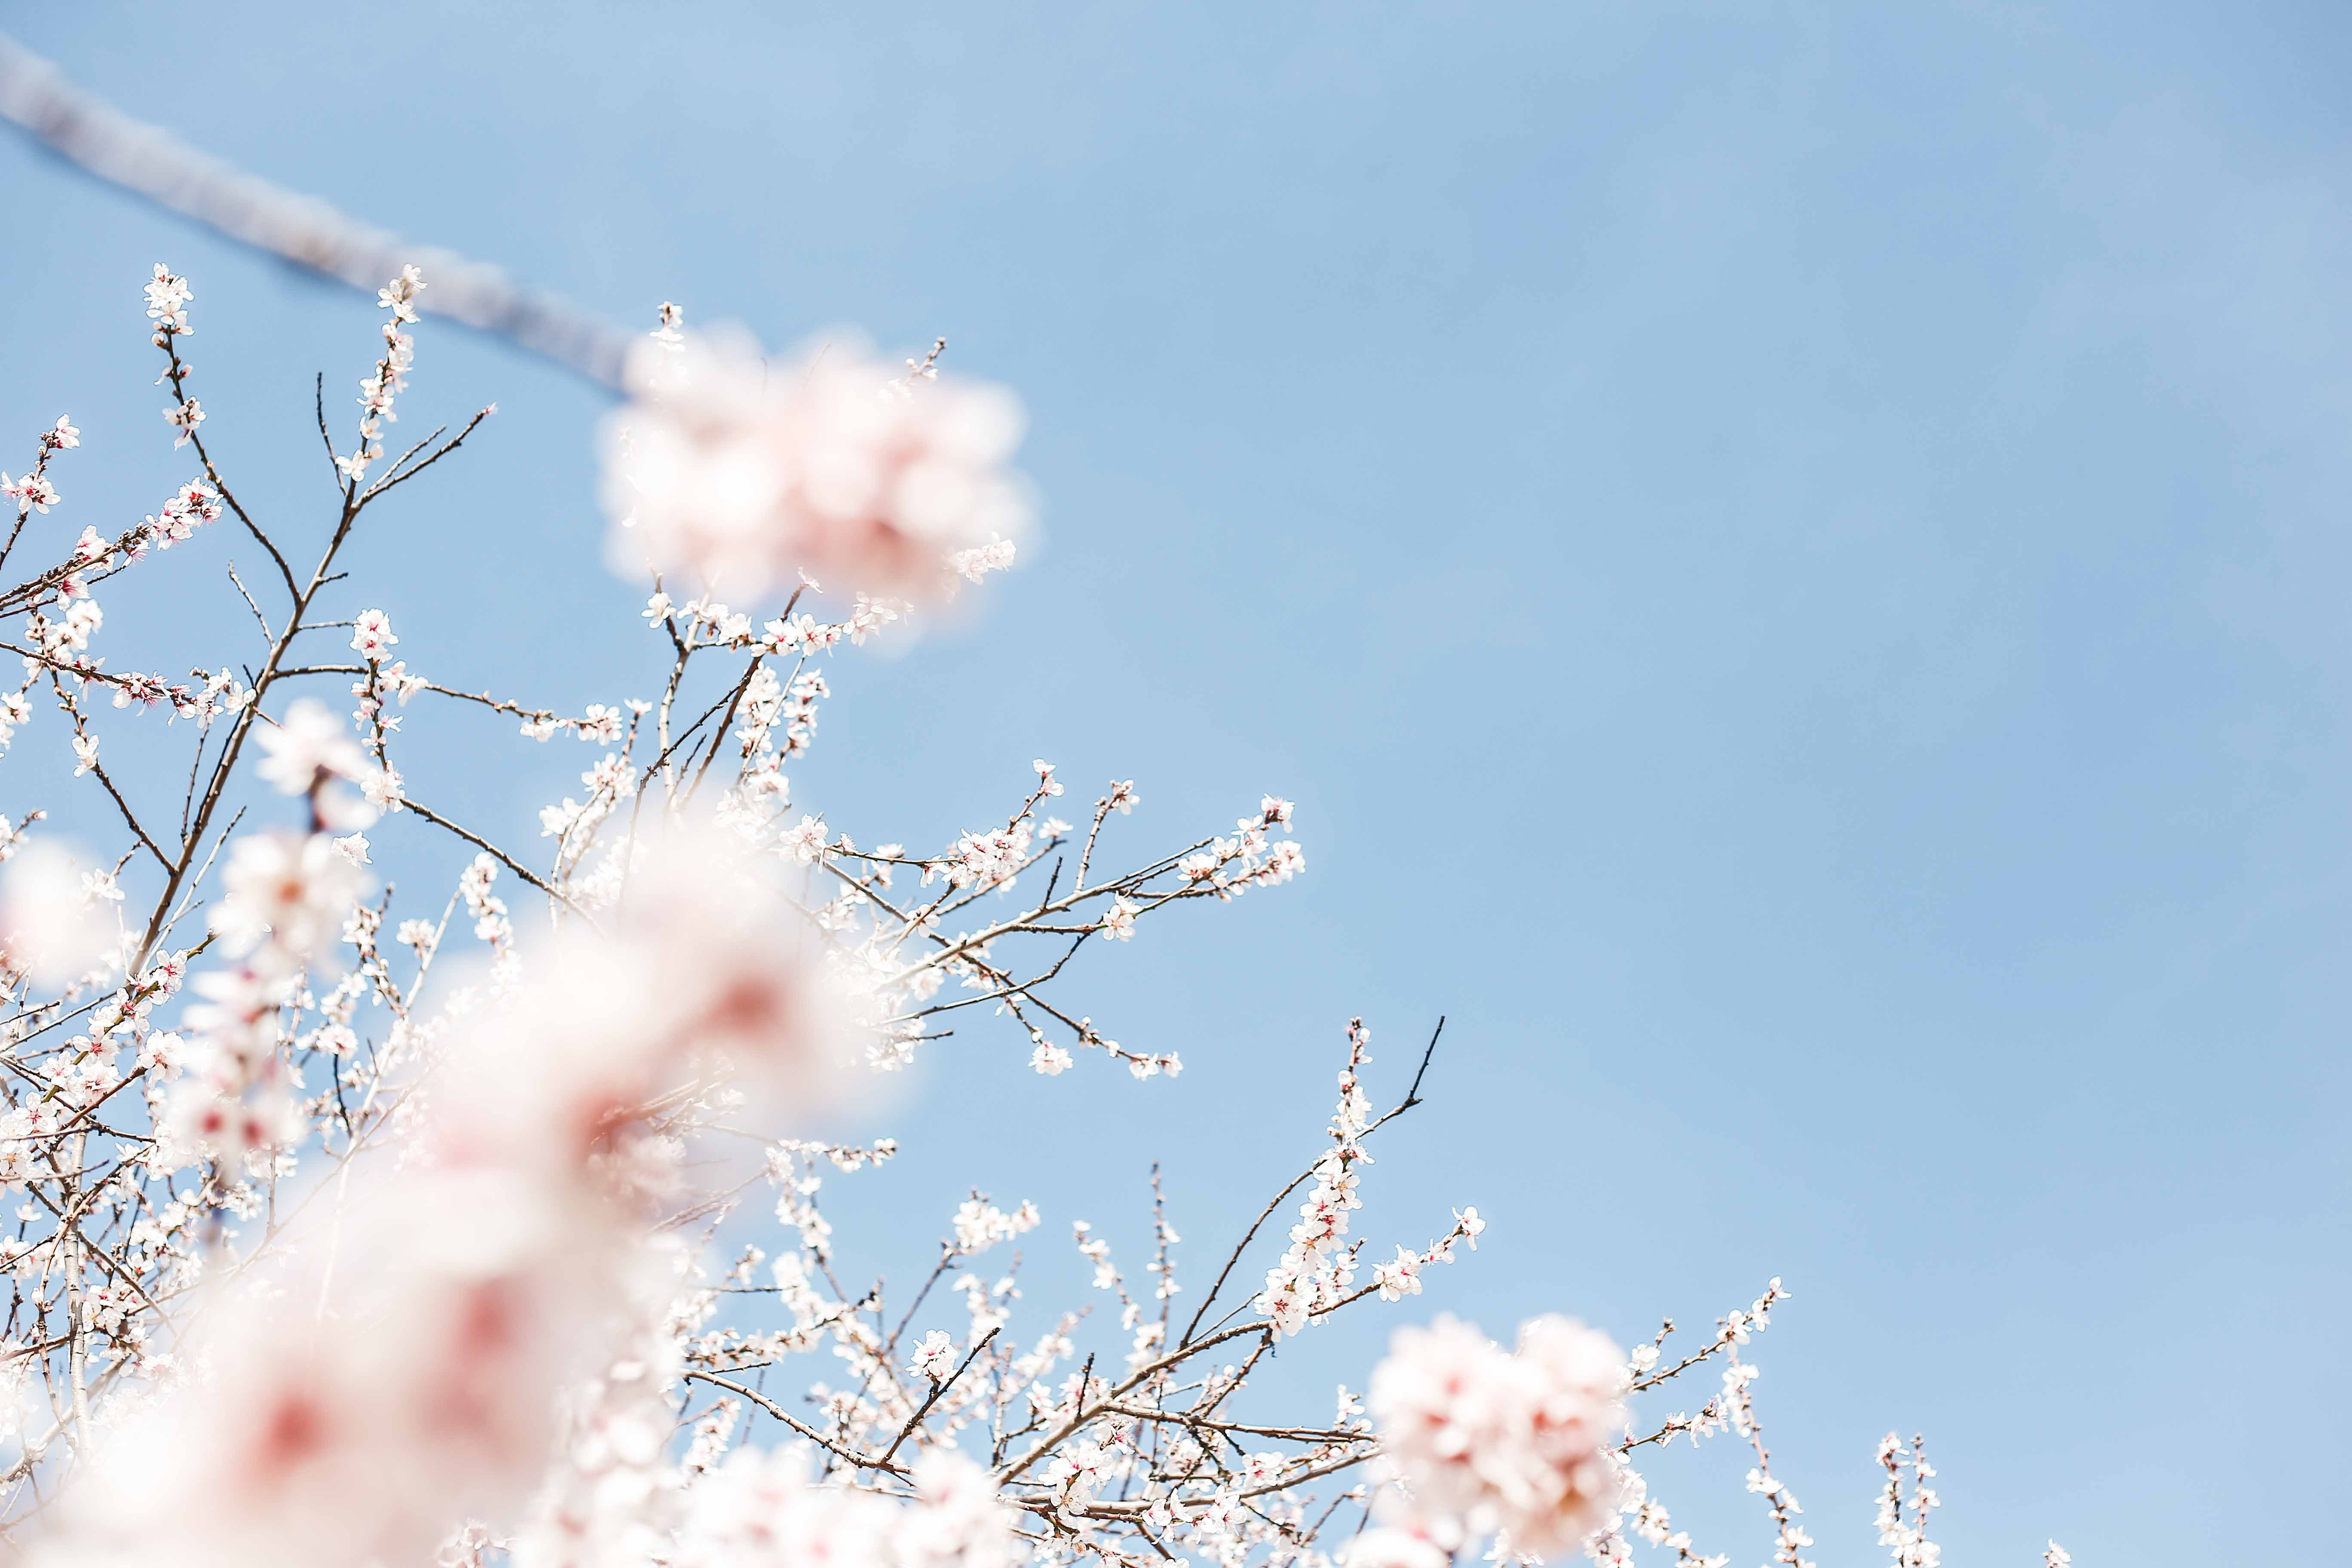 Spring blossom on tree branch against clear blue sky background, Madrid